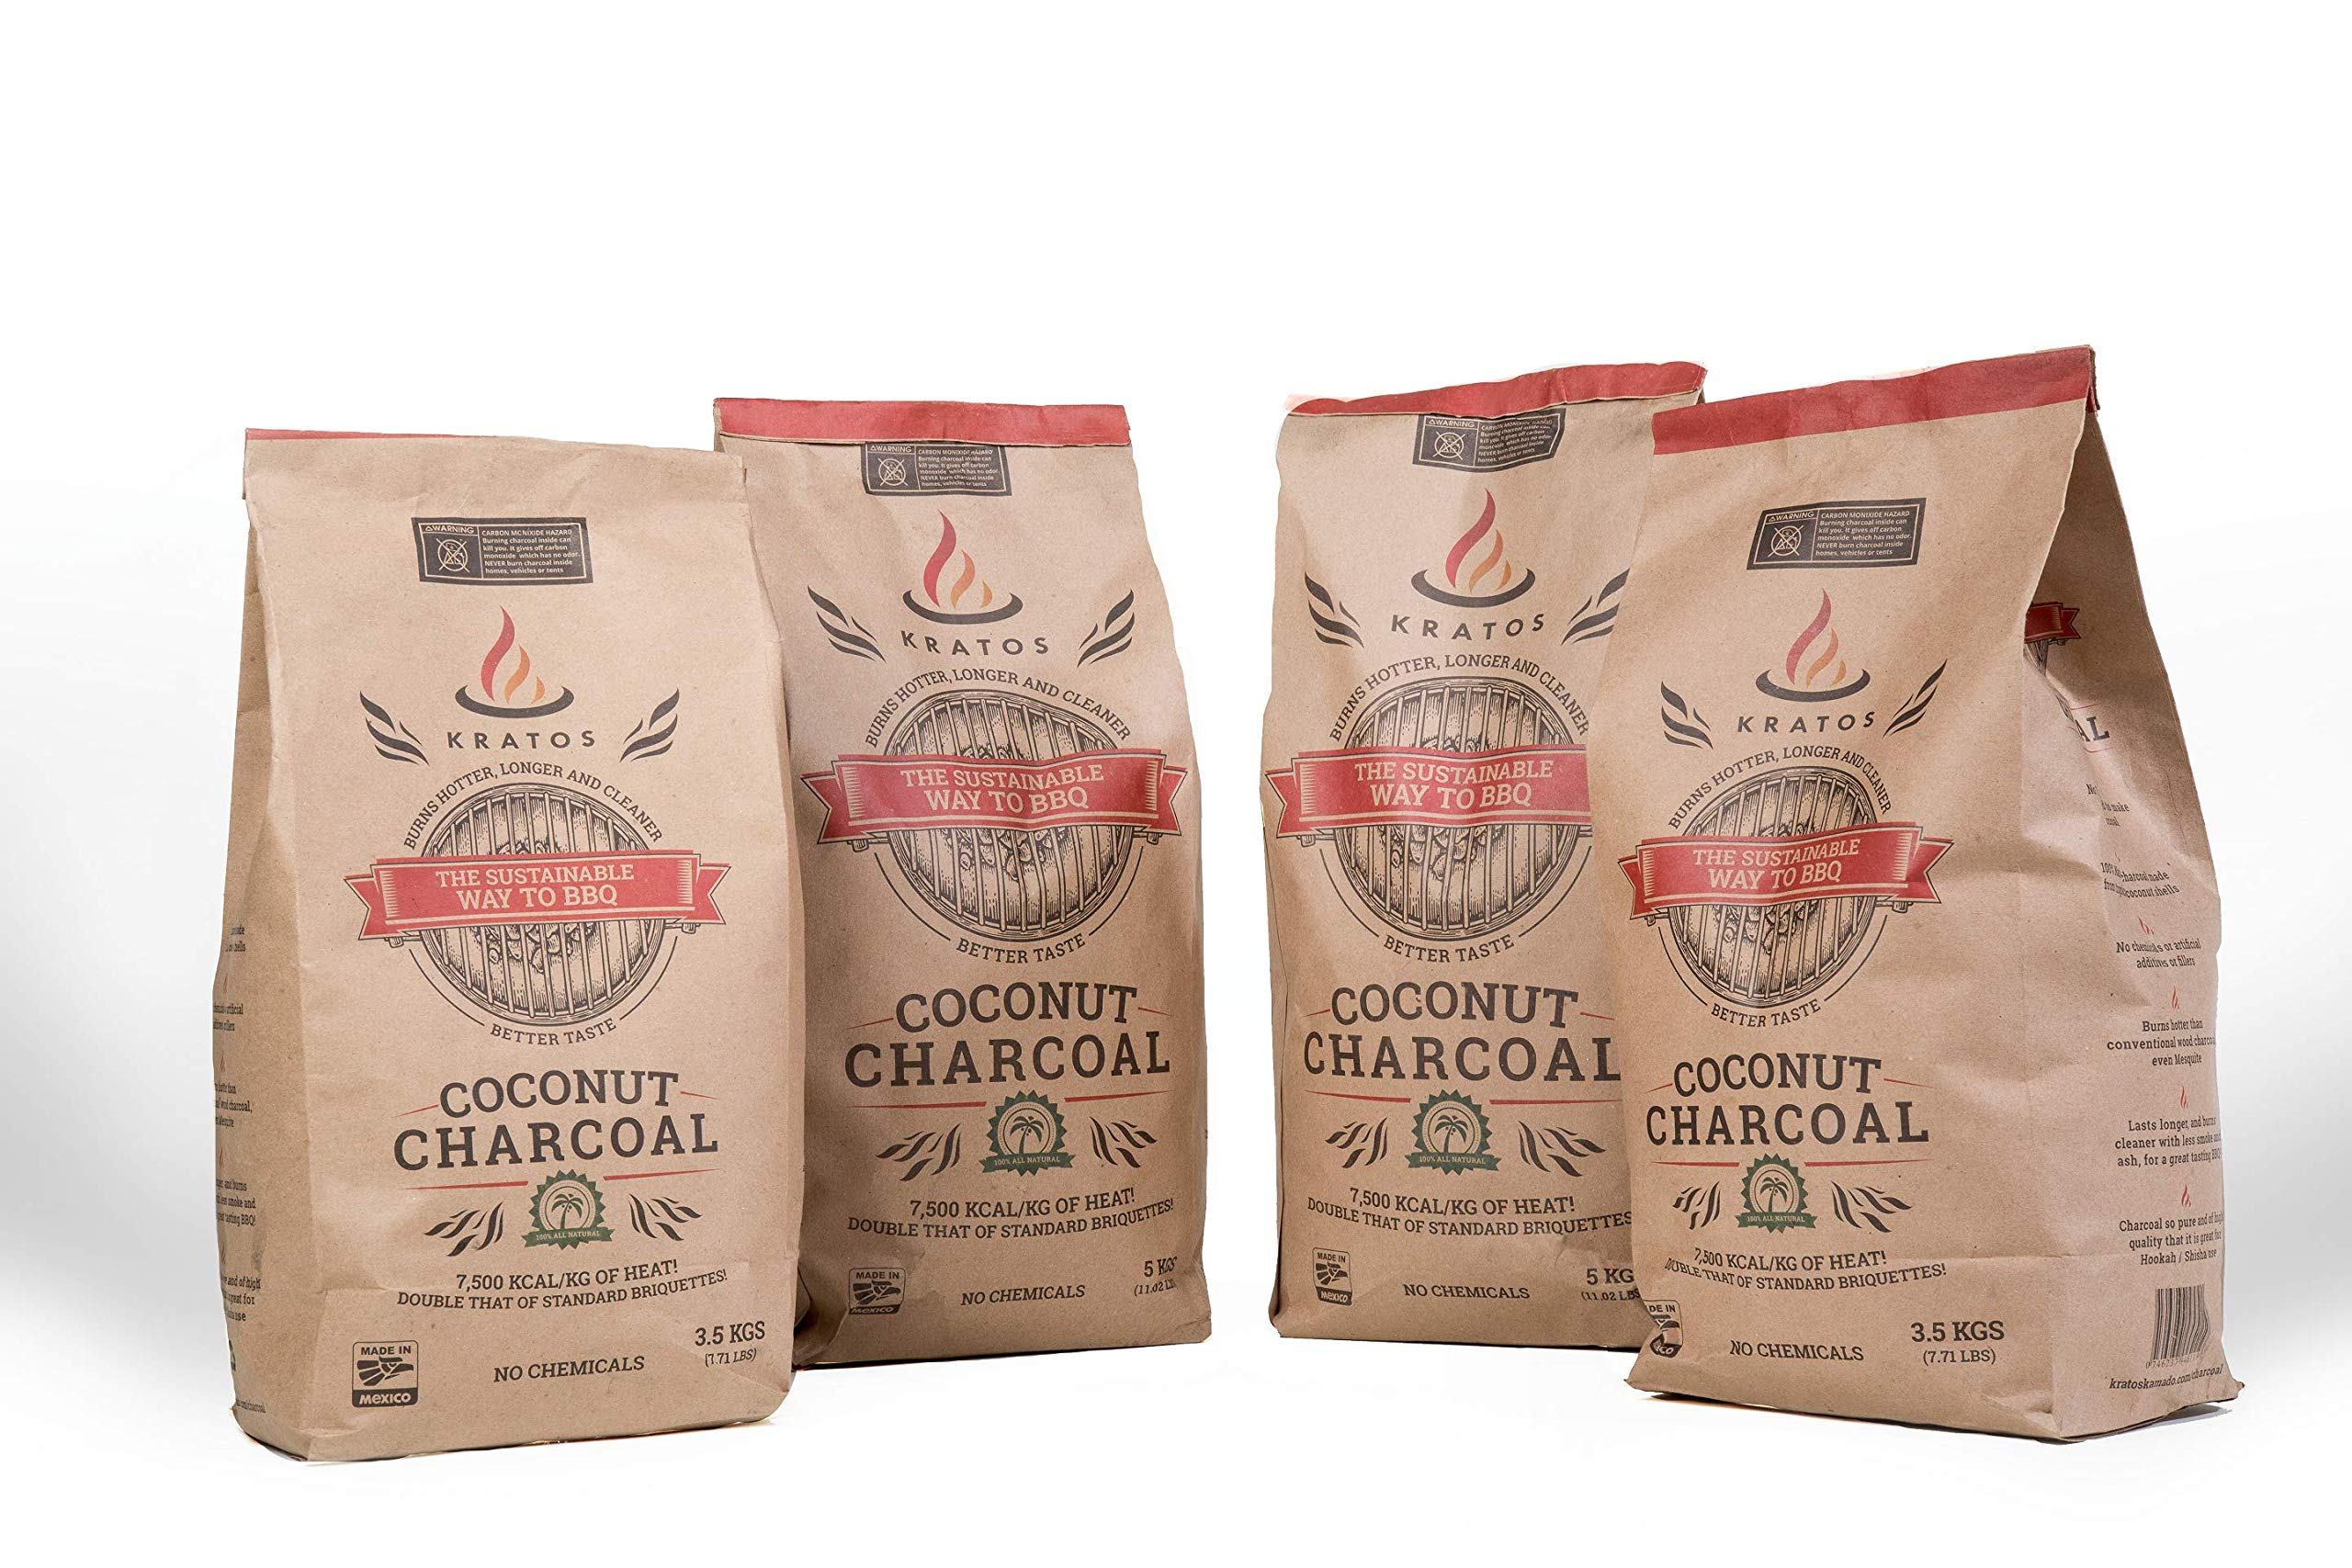 Kratos BBQ Coconut Shell Charcoal Briquettes - All Natural High End Grilling (11 Pound Bag, 4-Pack)